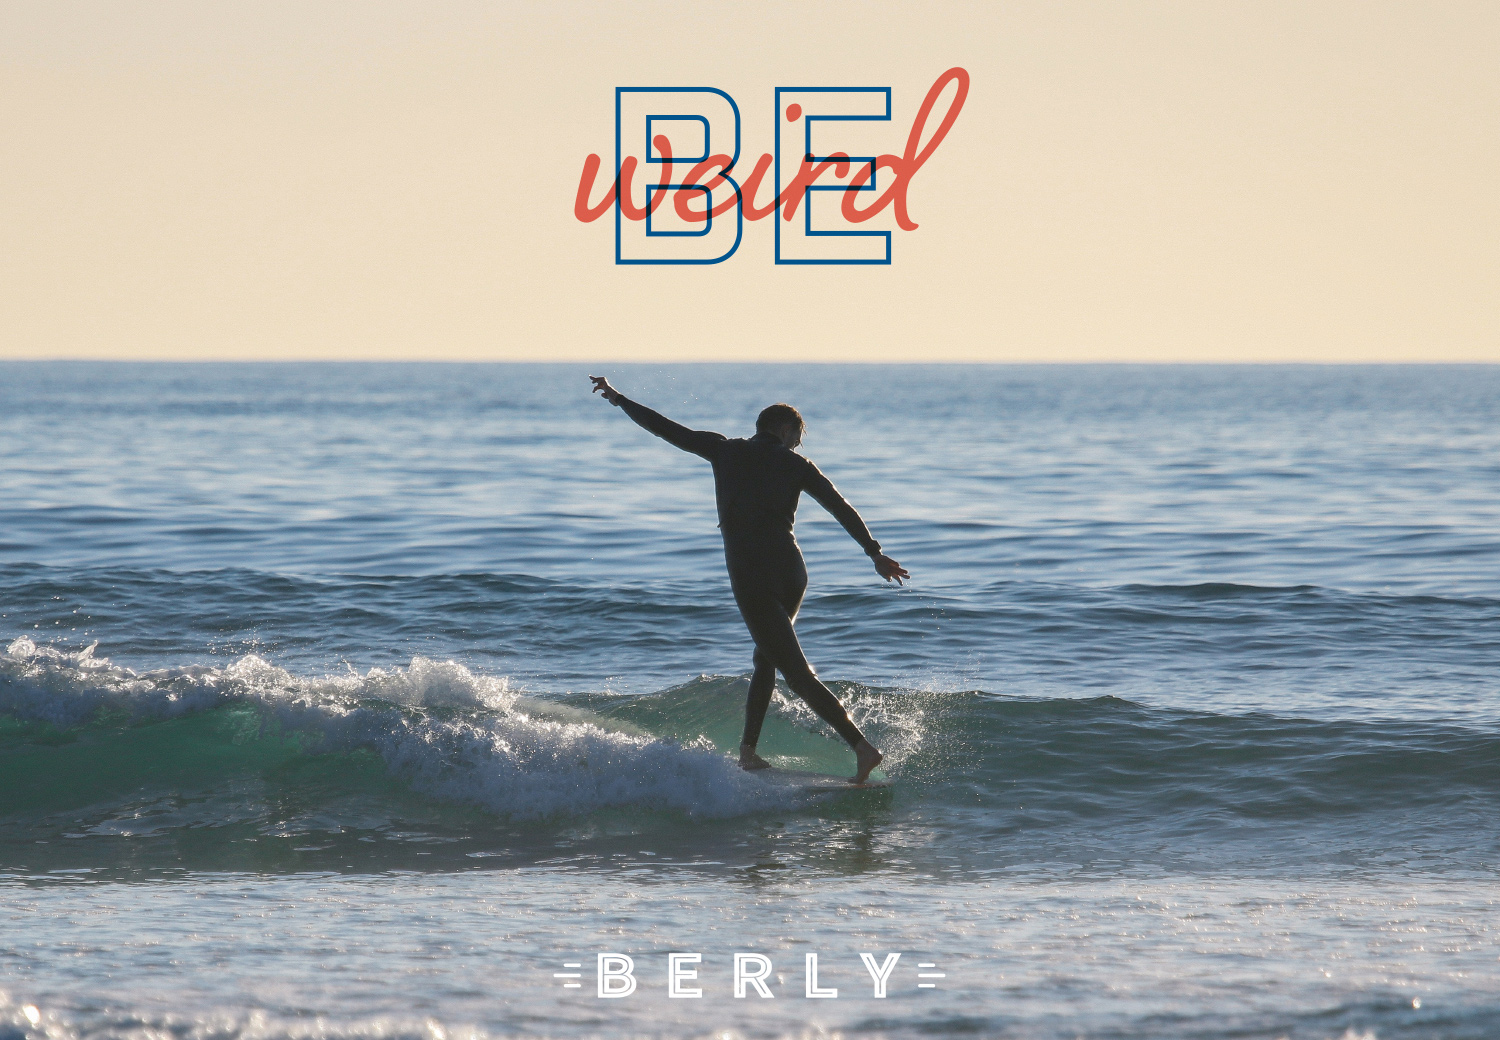 Brand consultancy, branding, logo design for Berly Creative, videographer and filmmaker in California. Brand created by Ditto Creative, boutique branding agency in Kent